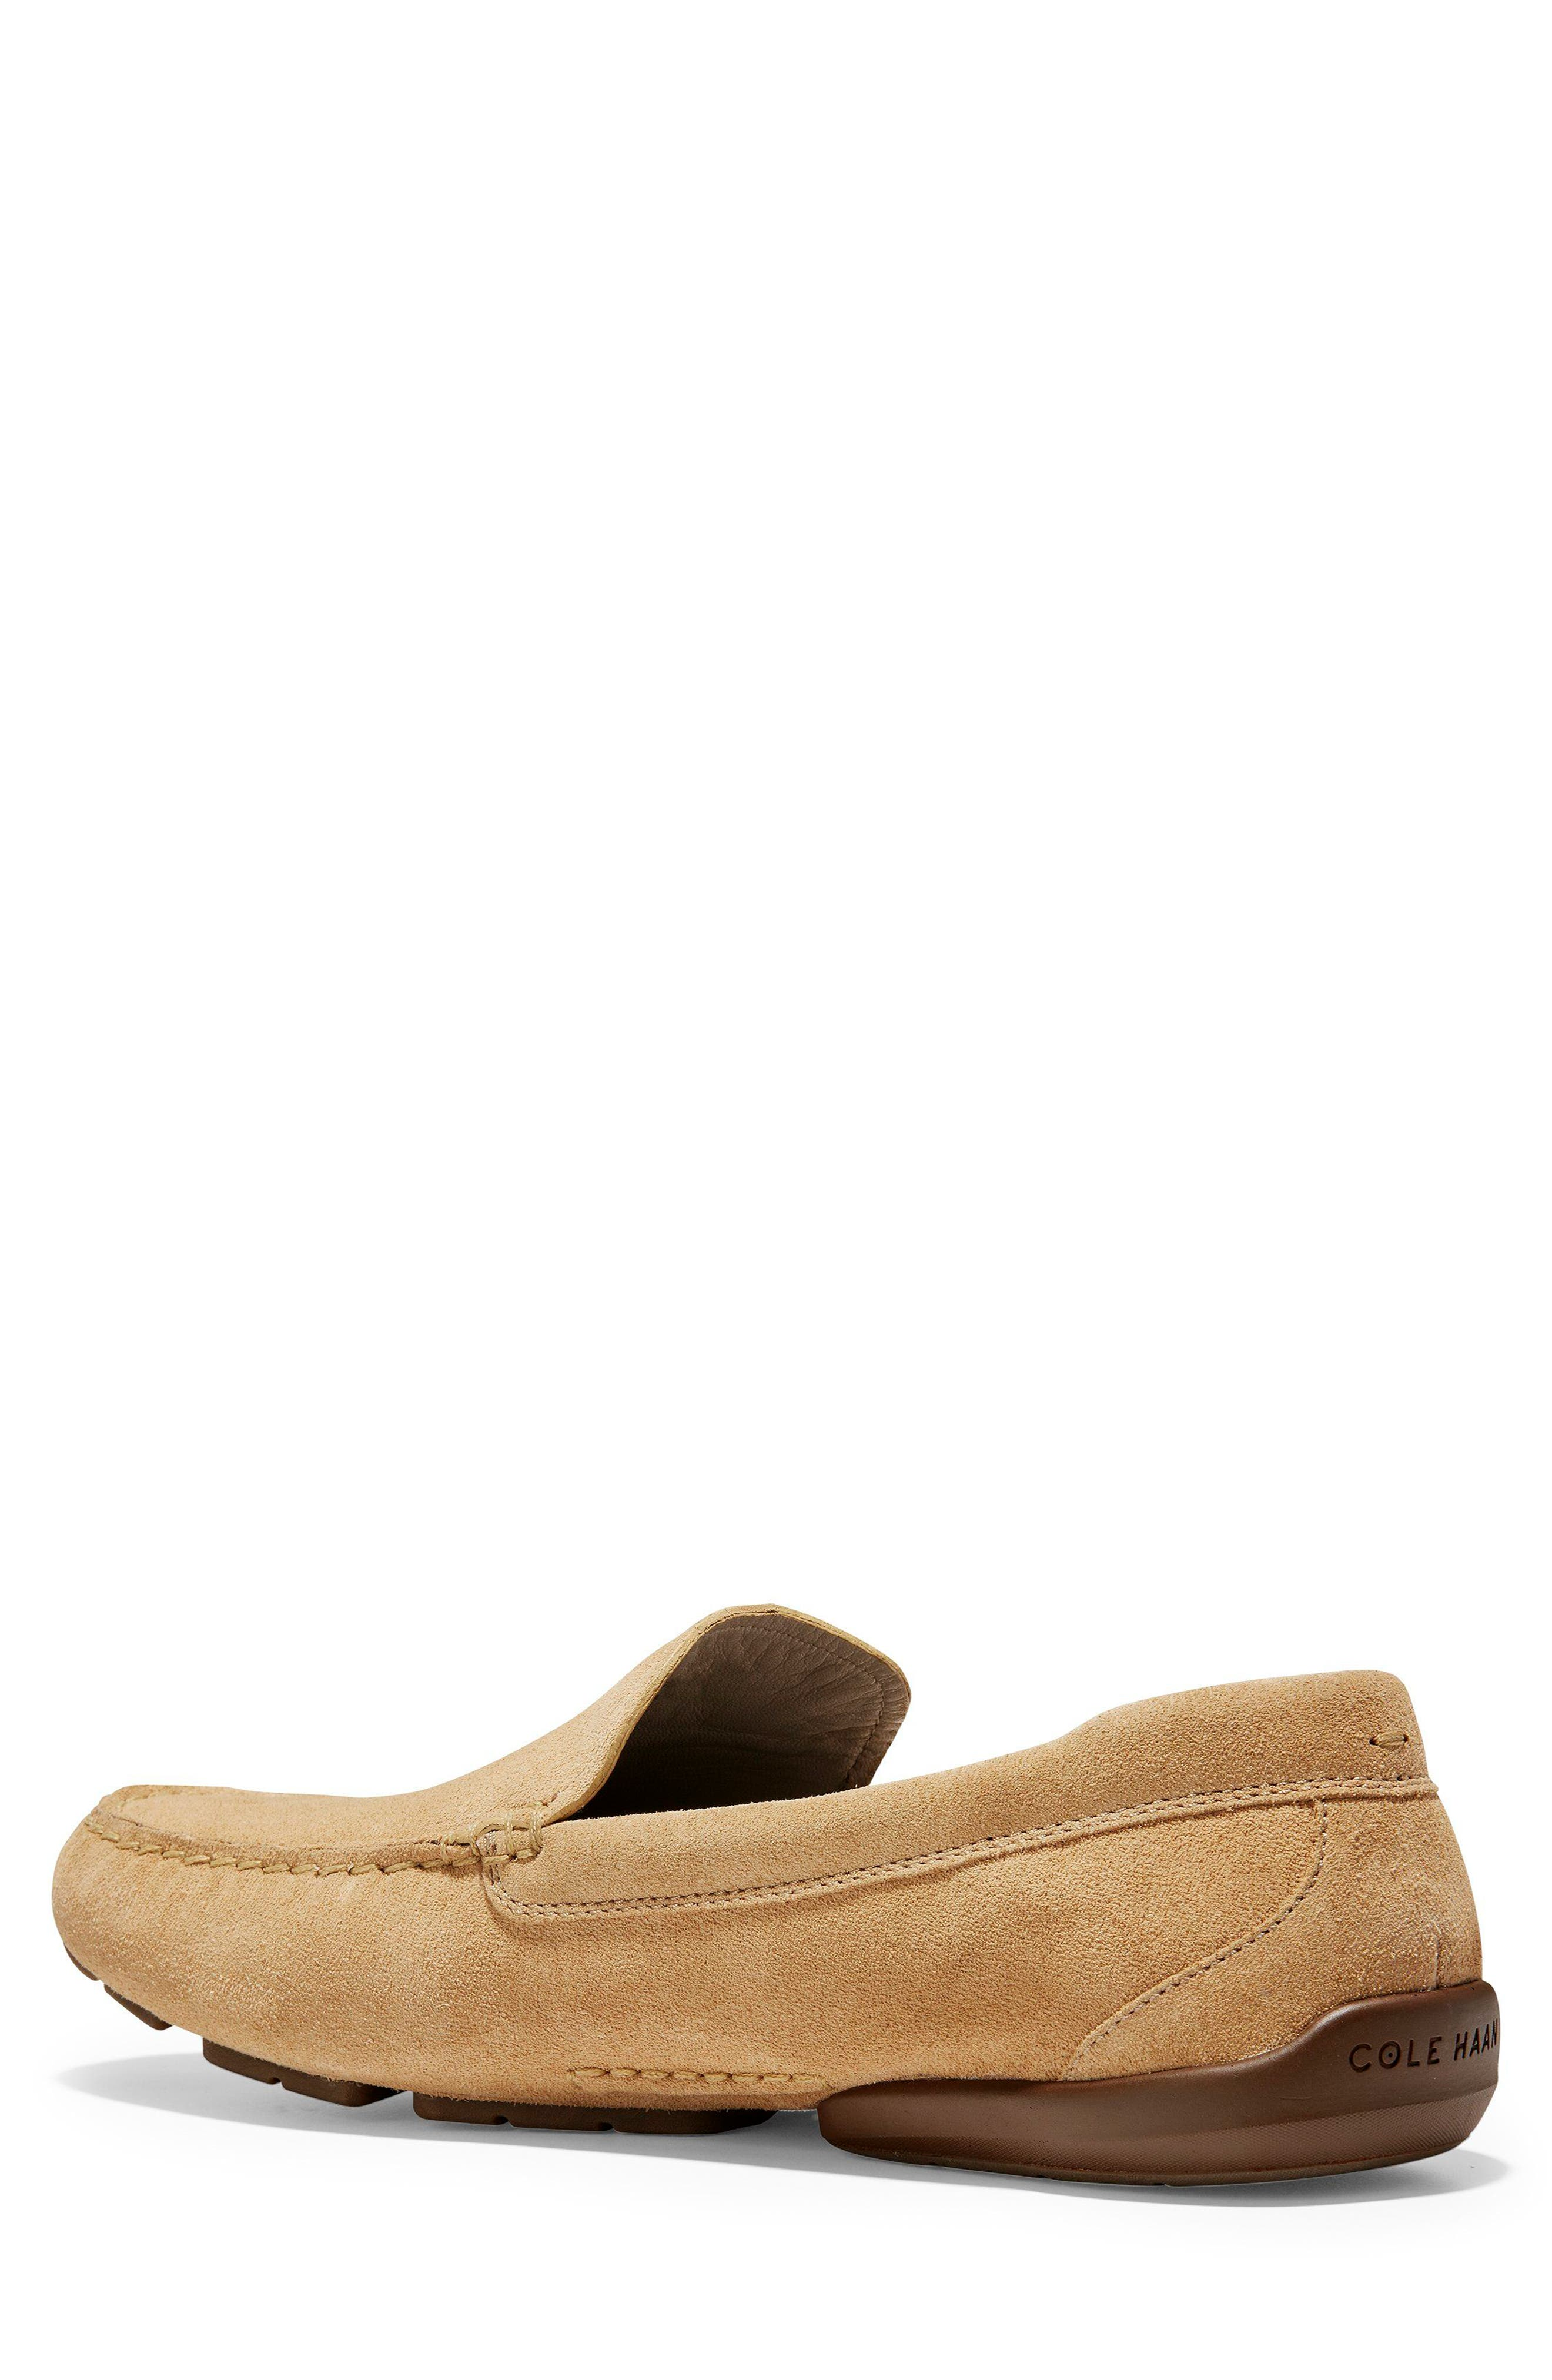 Branson Driving Shoe,                             Alternate thumbnail 2, color,                             Iced Coffee Suede